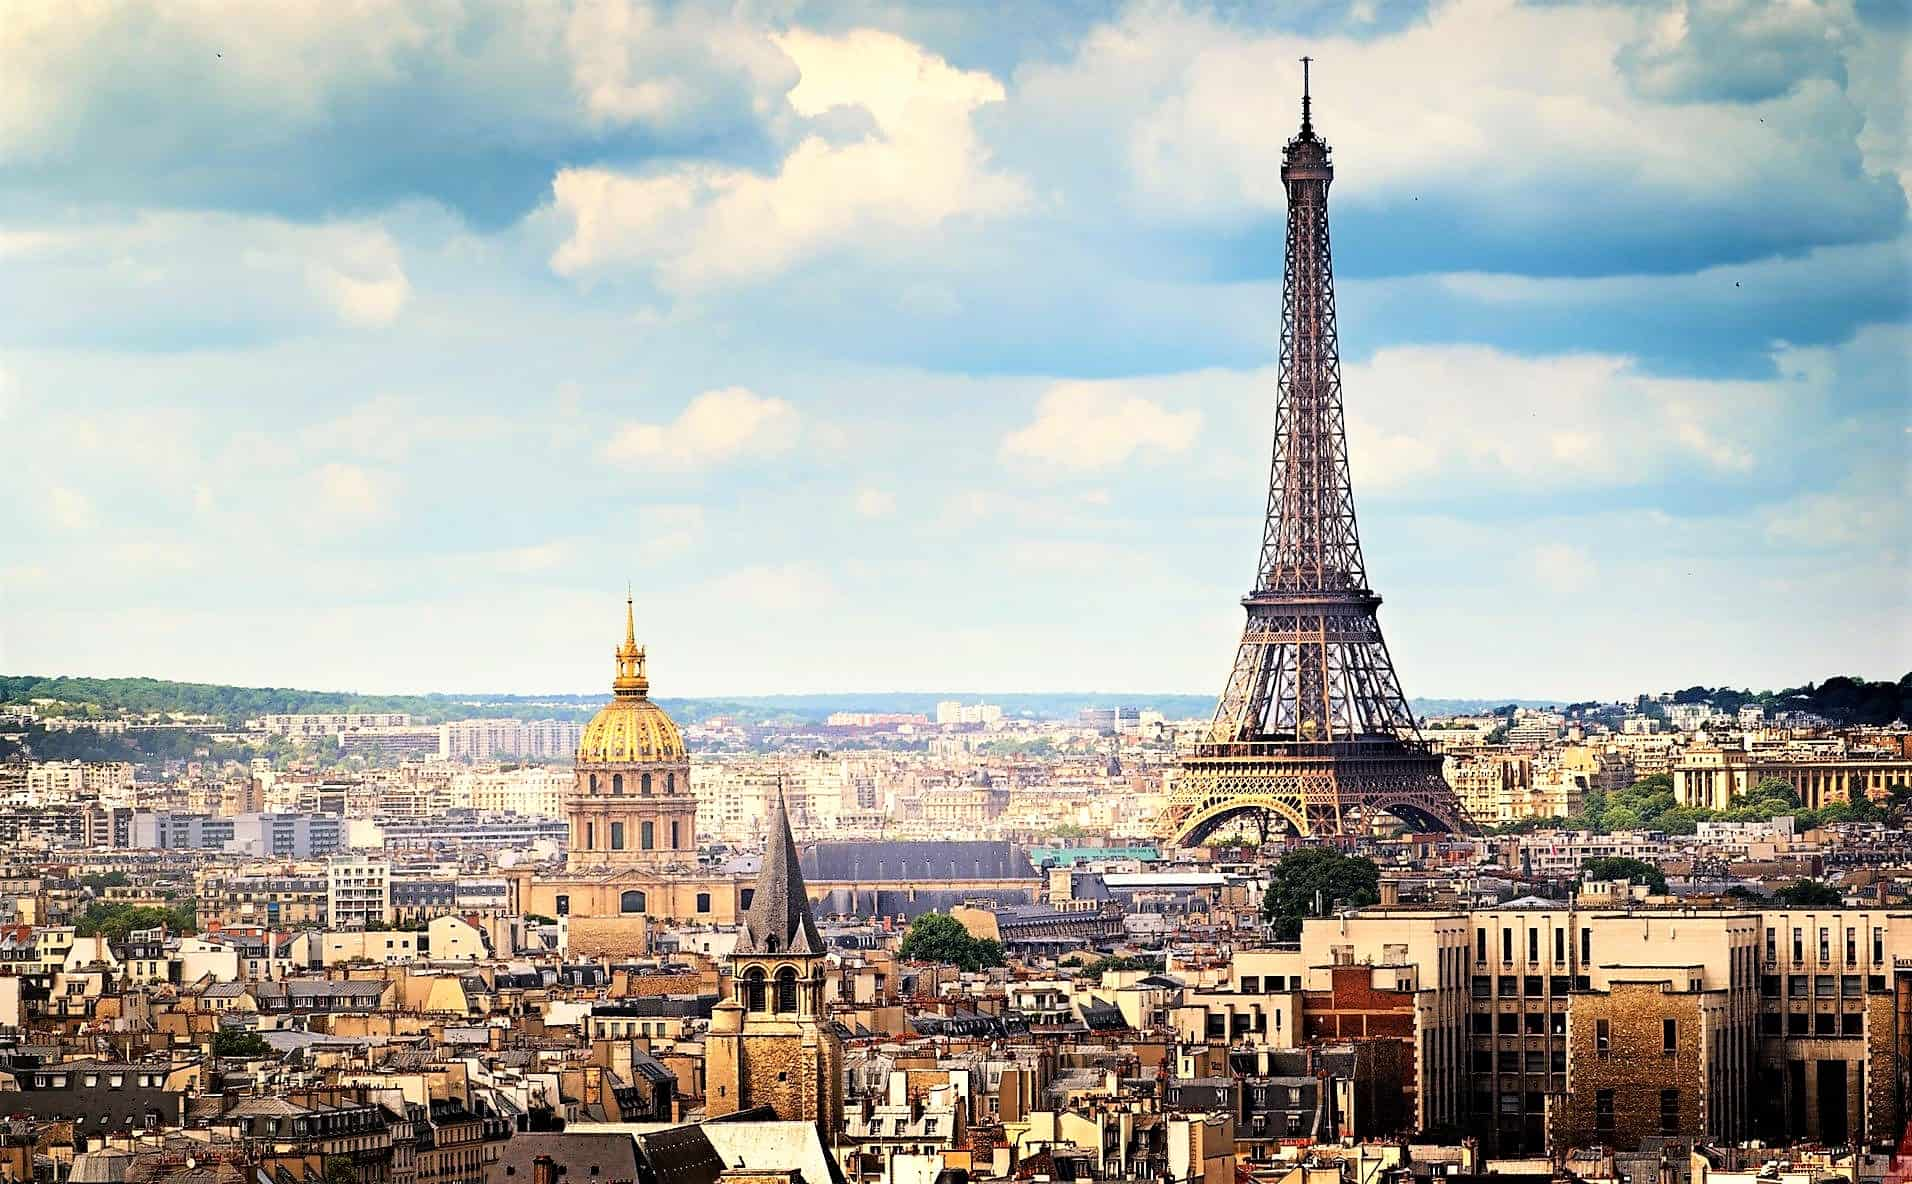 the Eiffel tower in paris, the capital of france where you should register for VAT